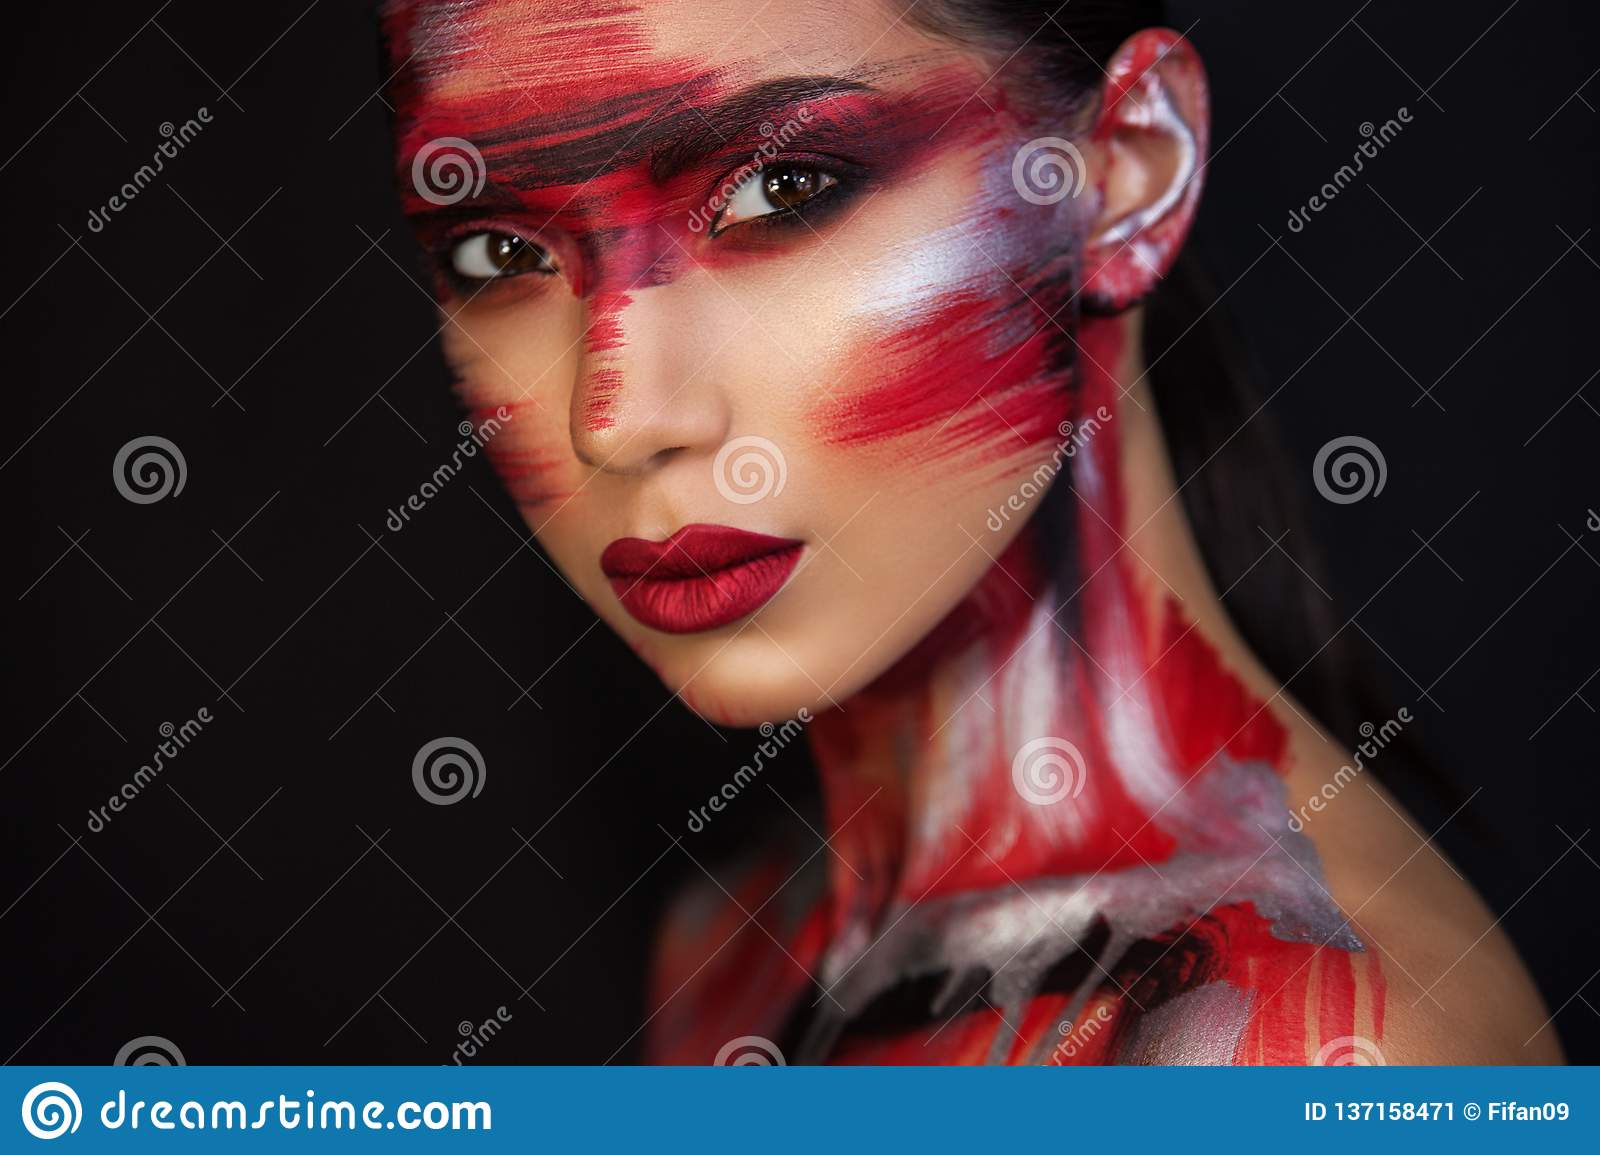 The Euro-Asian woman looks directly at us, on a black background, sensual red lips are closed, red silver black makeup emphasizes her image